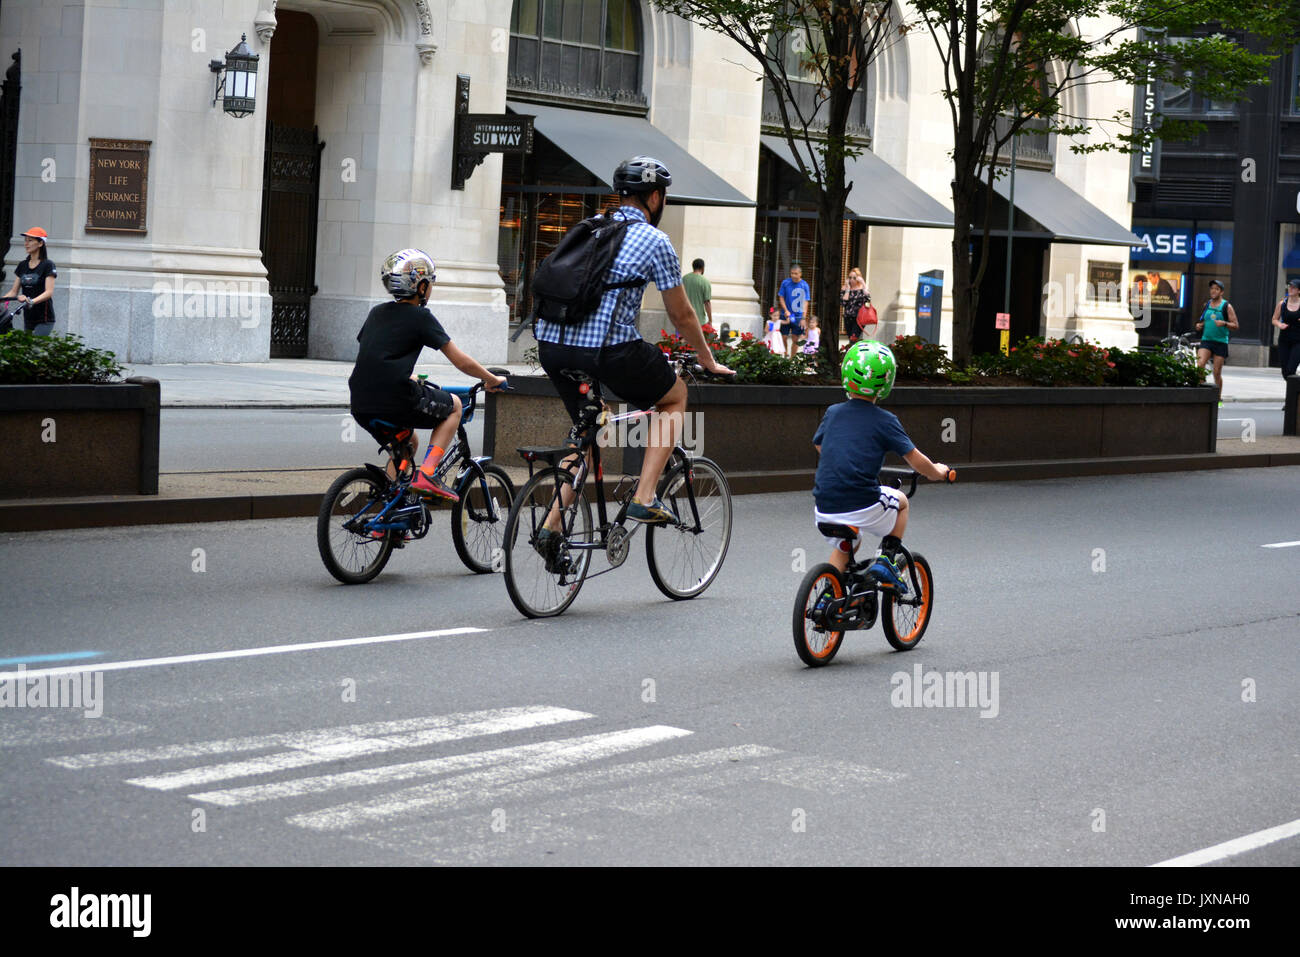 People on Park Avenue taking part in the annual car free Summer Streets event in New York City. - Stock Image